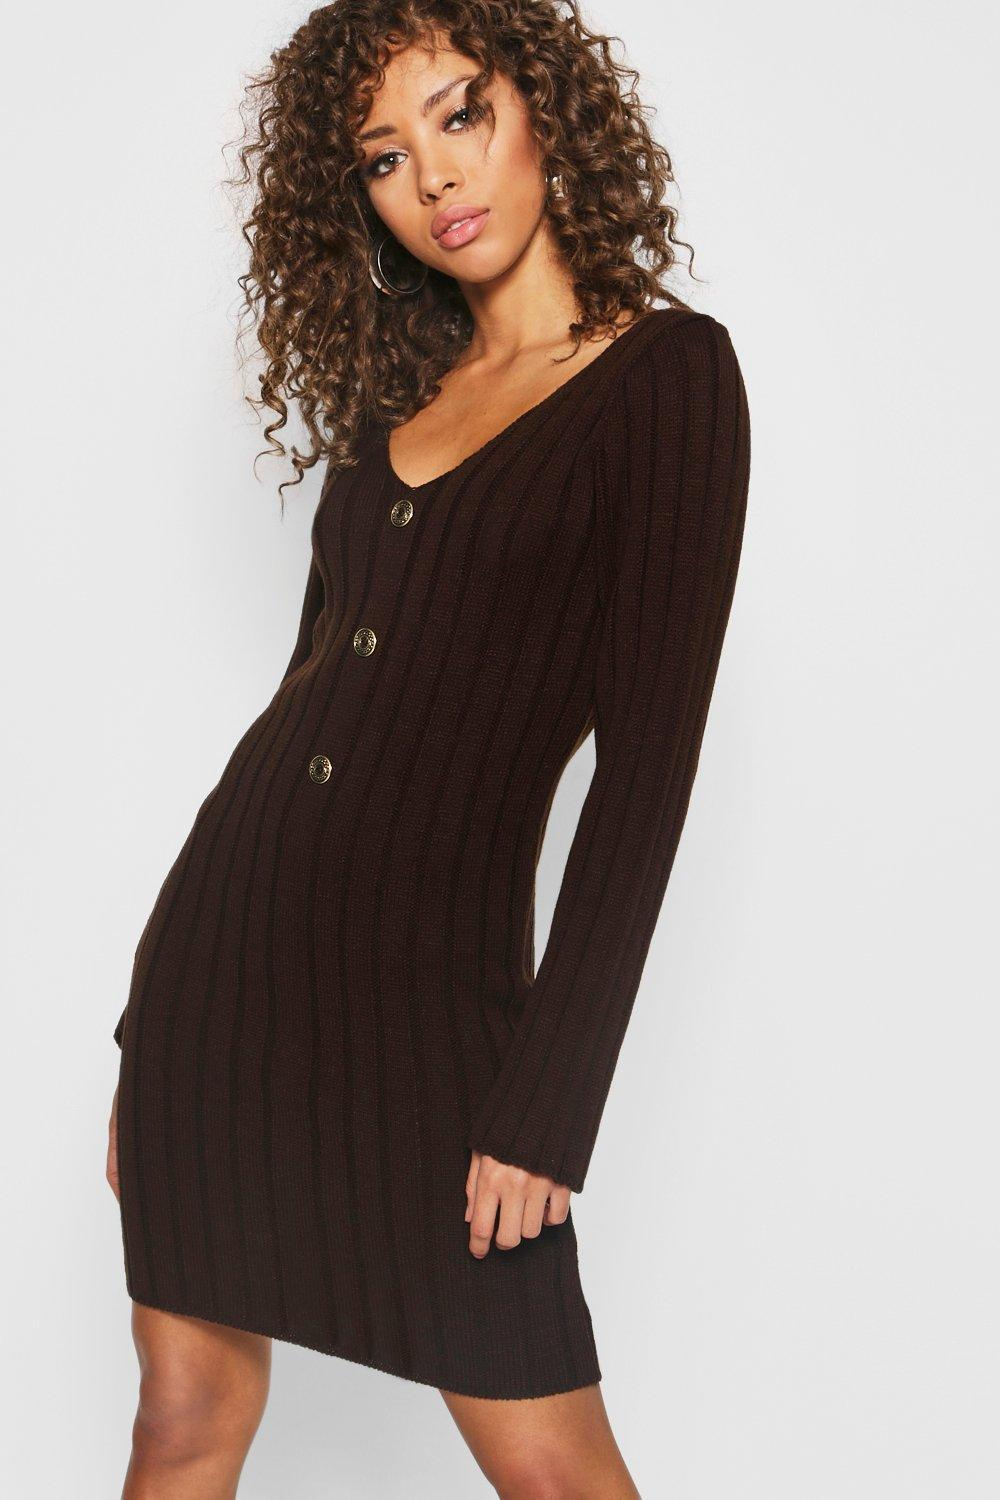 81b525e5cc78 Boohoo Long Sleeve Rib Knit Gold Button Front Dress in Brown - Lyst